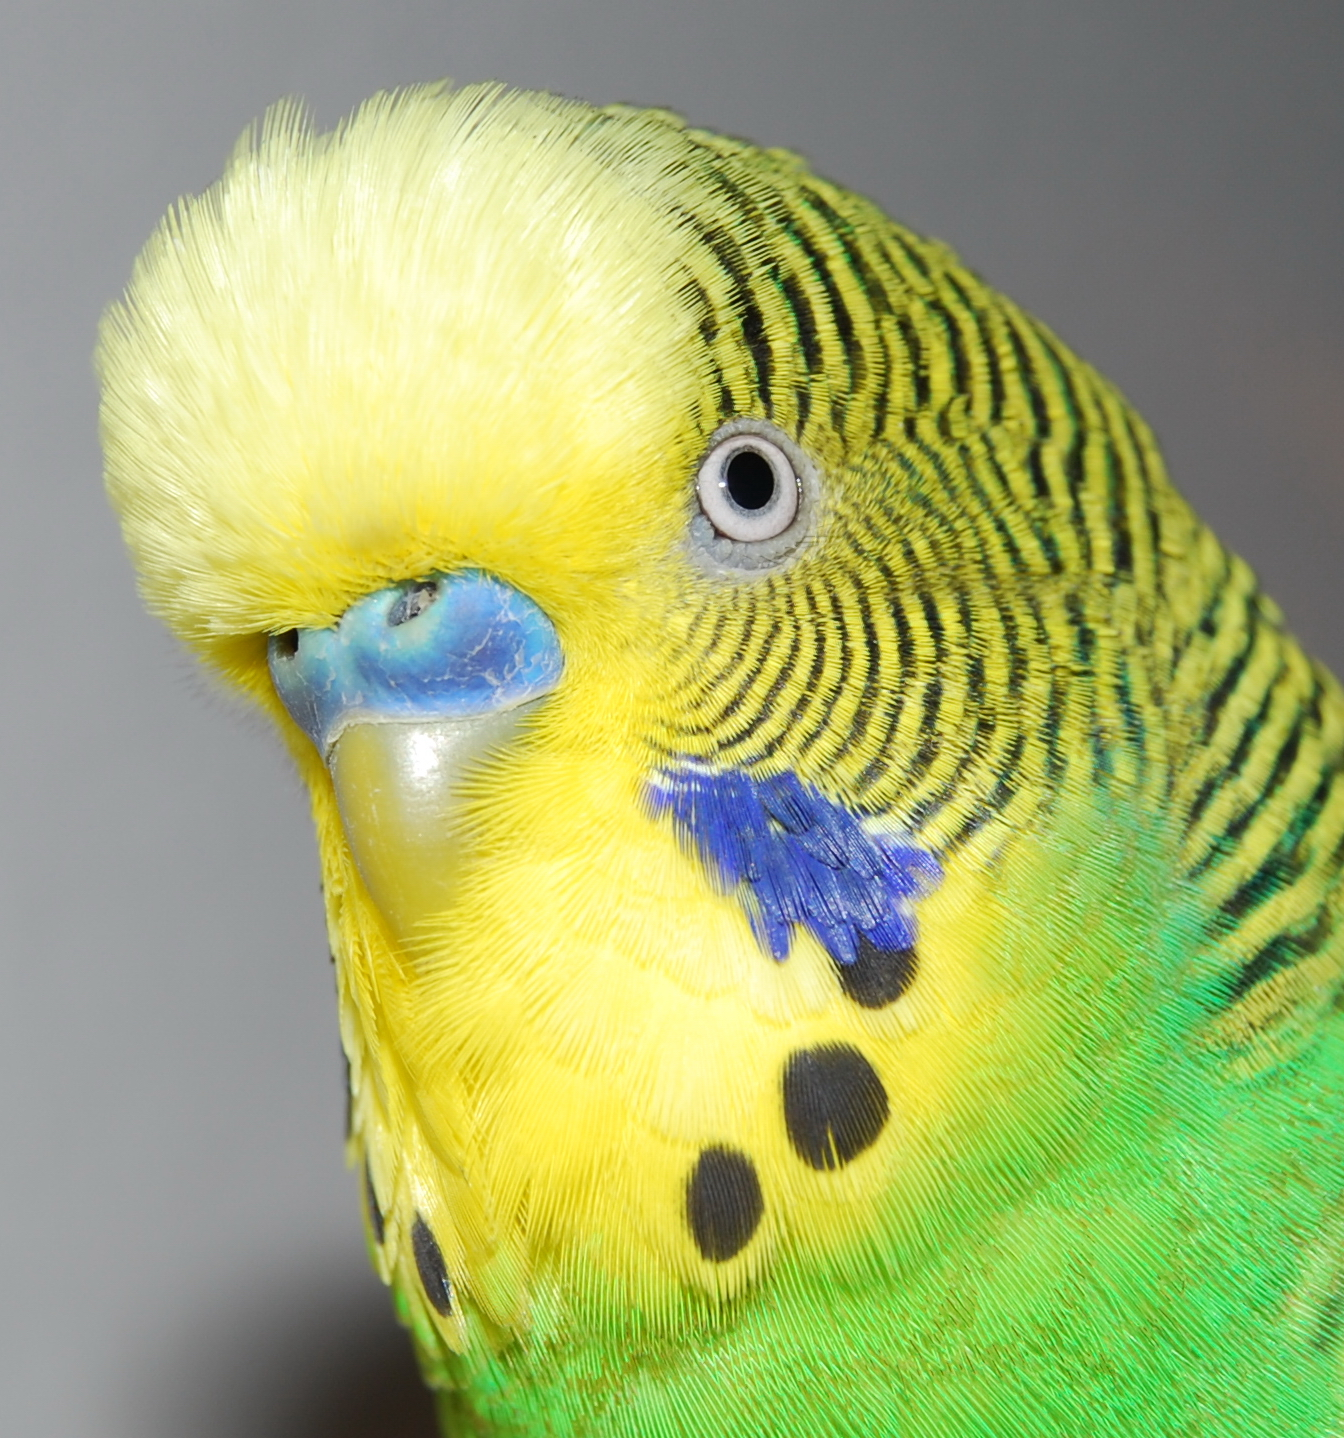 http://upload.wikimedia.org/wikipedia/commons/1/1c/Detail_shot_of_budgerigars_head.jpg